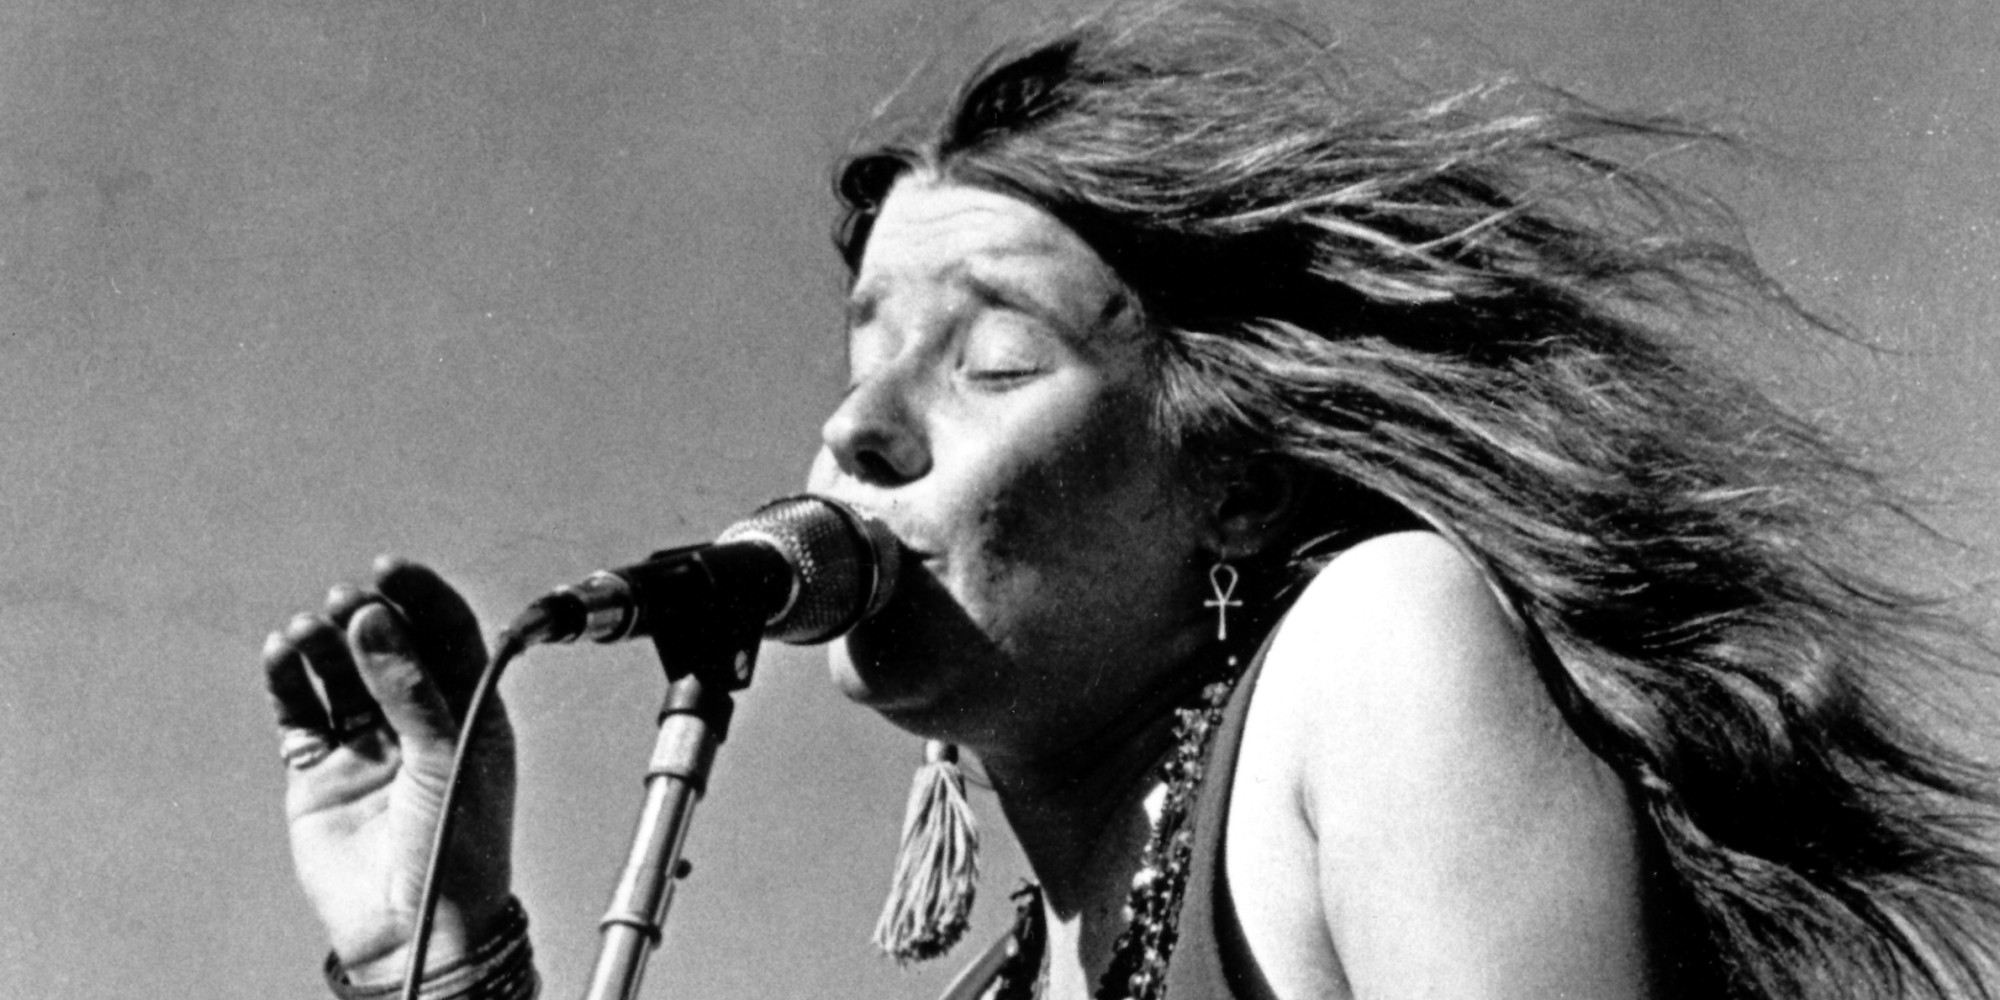 JANIS - … for Janis Joplin and the song Piece of My Heart. Originally recorded by Erma Franklin in 1967, it became an even major hit with the Big Brother and the Holding Company's cover, band featuring Janis Joplin on lead vocals. The song was part of their album Cheap Thrills, released in 1968. Until her death in 1970, Piece of My Heart was Joplin's biggest chart success and best-known song.